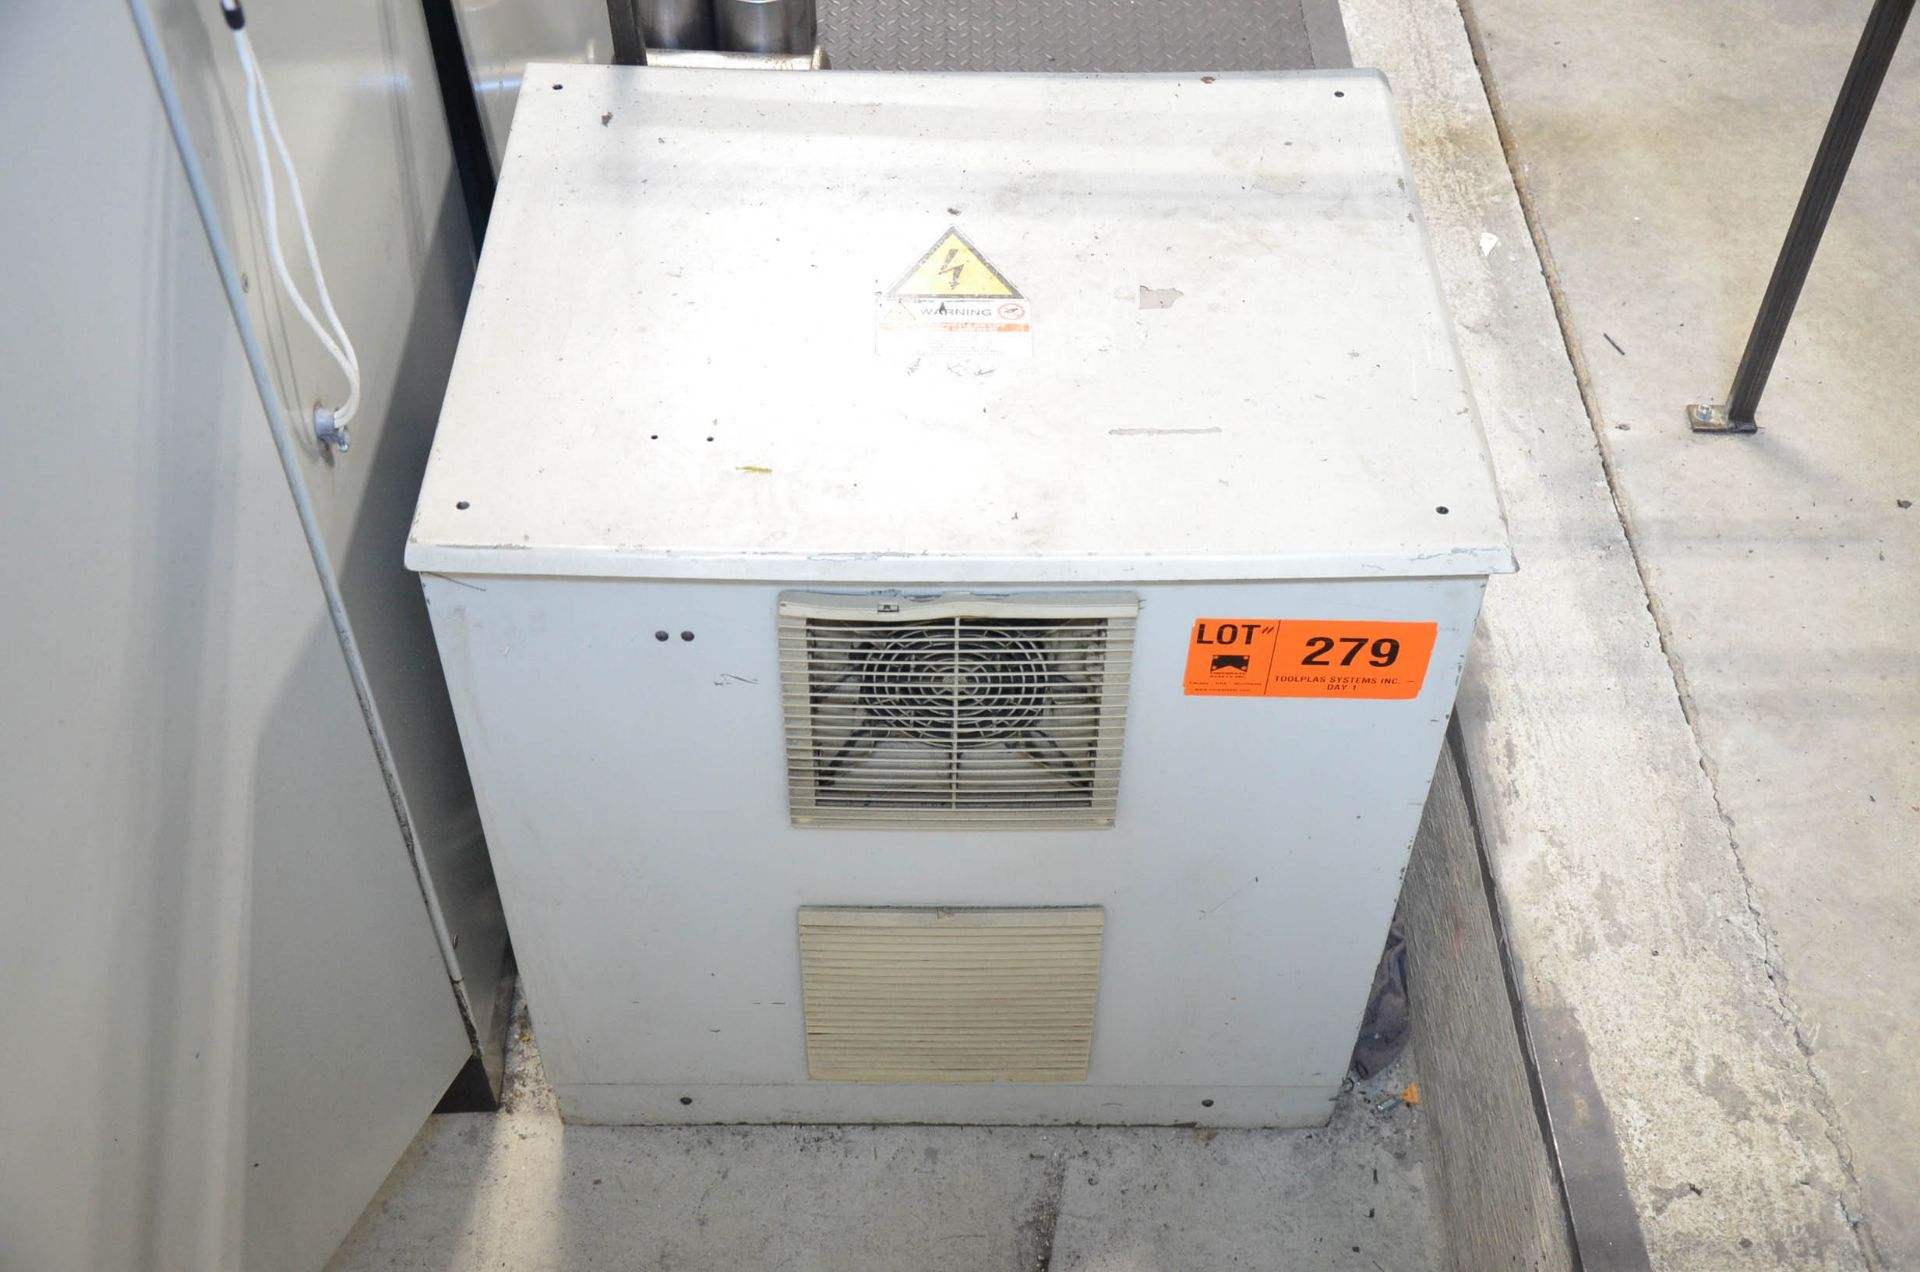 PARPAS TRANSFORMER, S/N N/A (CI) [RIGGING FEES FOR LOT #279 - $50 USD PLUS APPLICABLE TAXES]